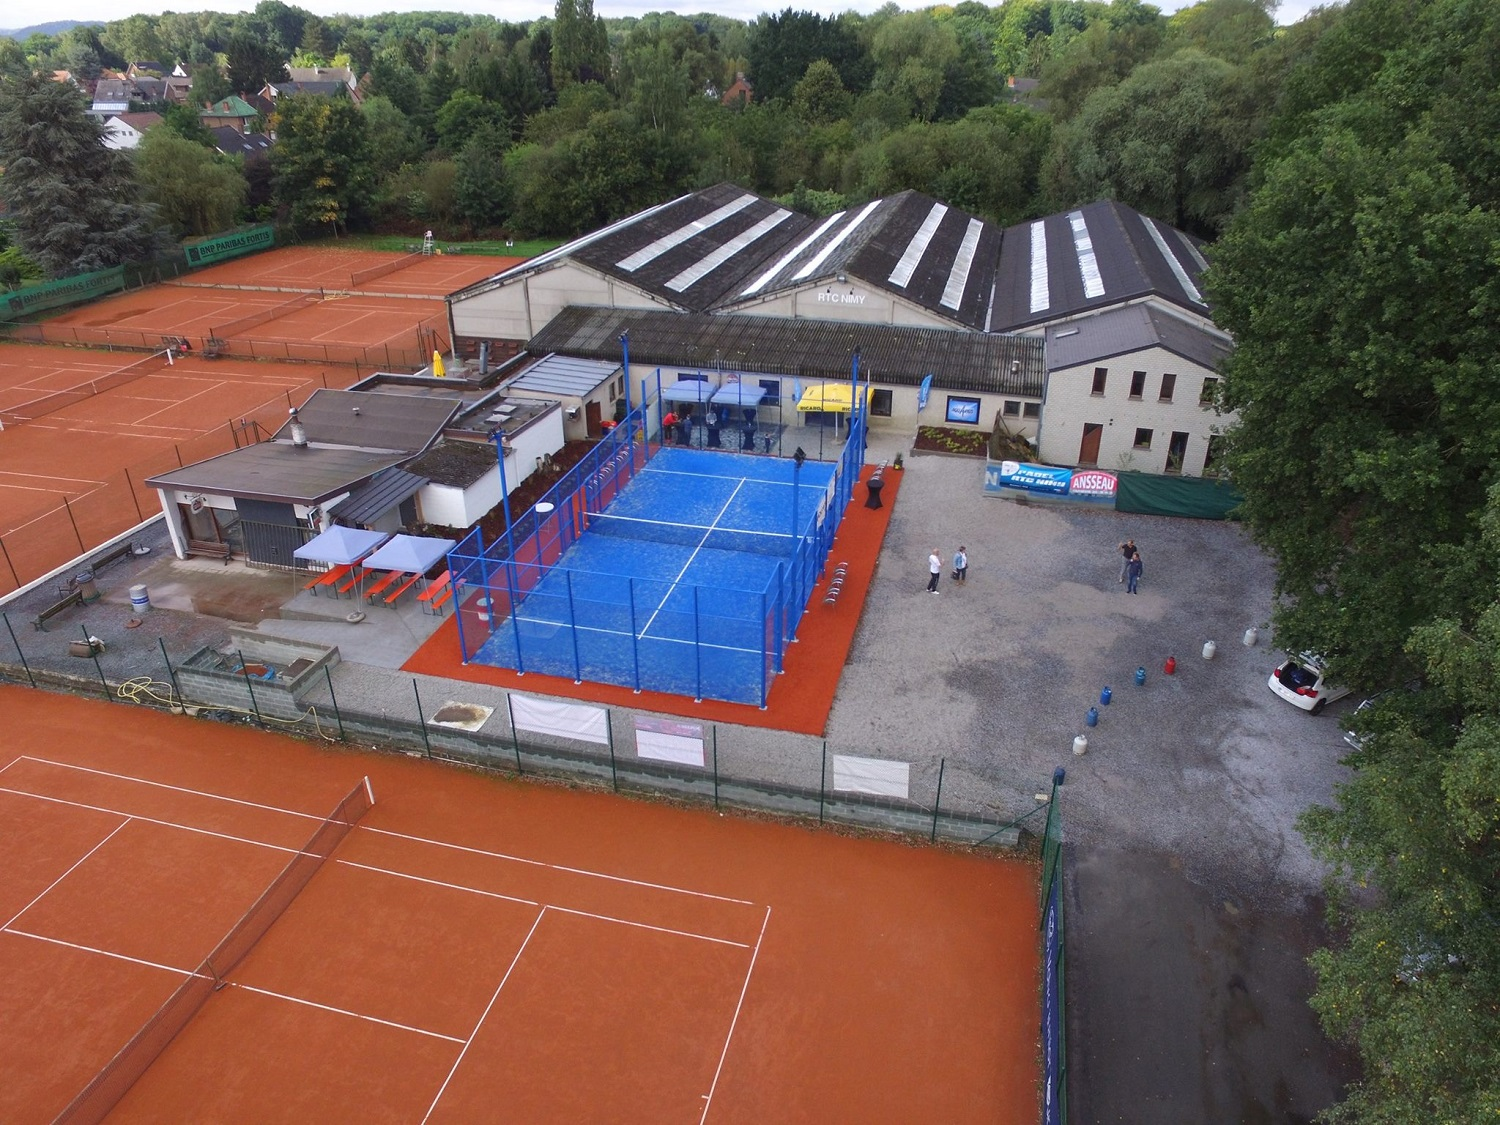 asbl monsports drone padel